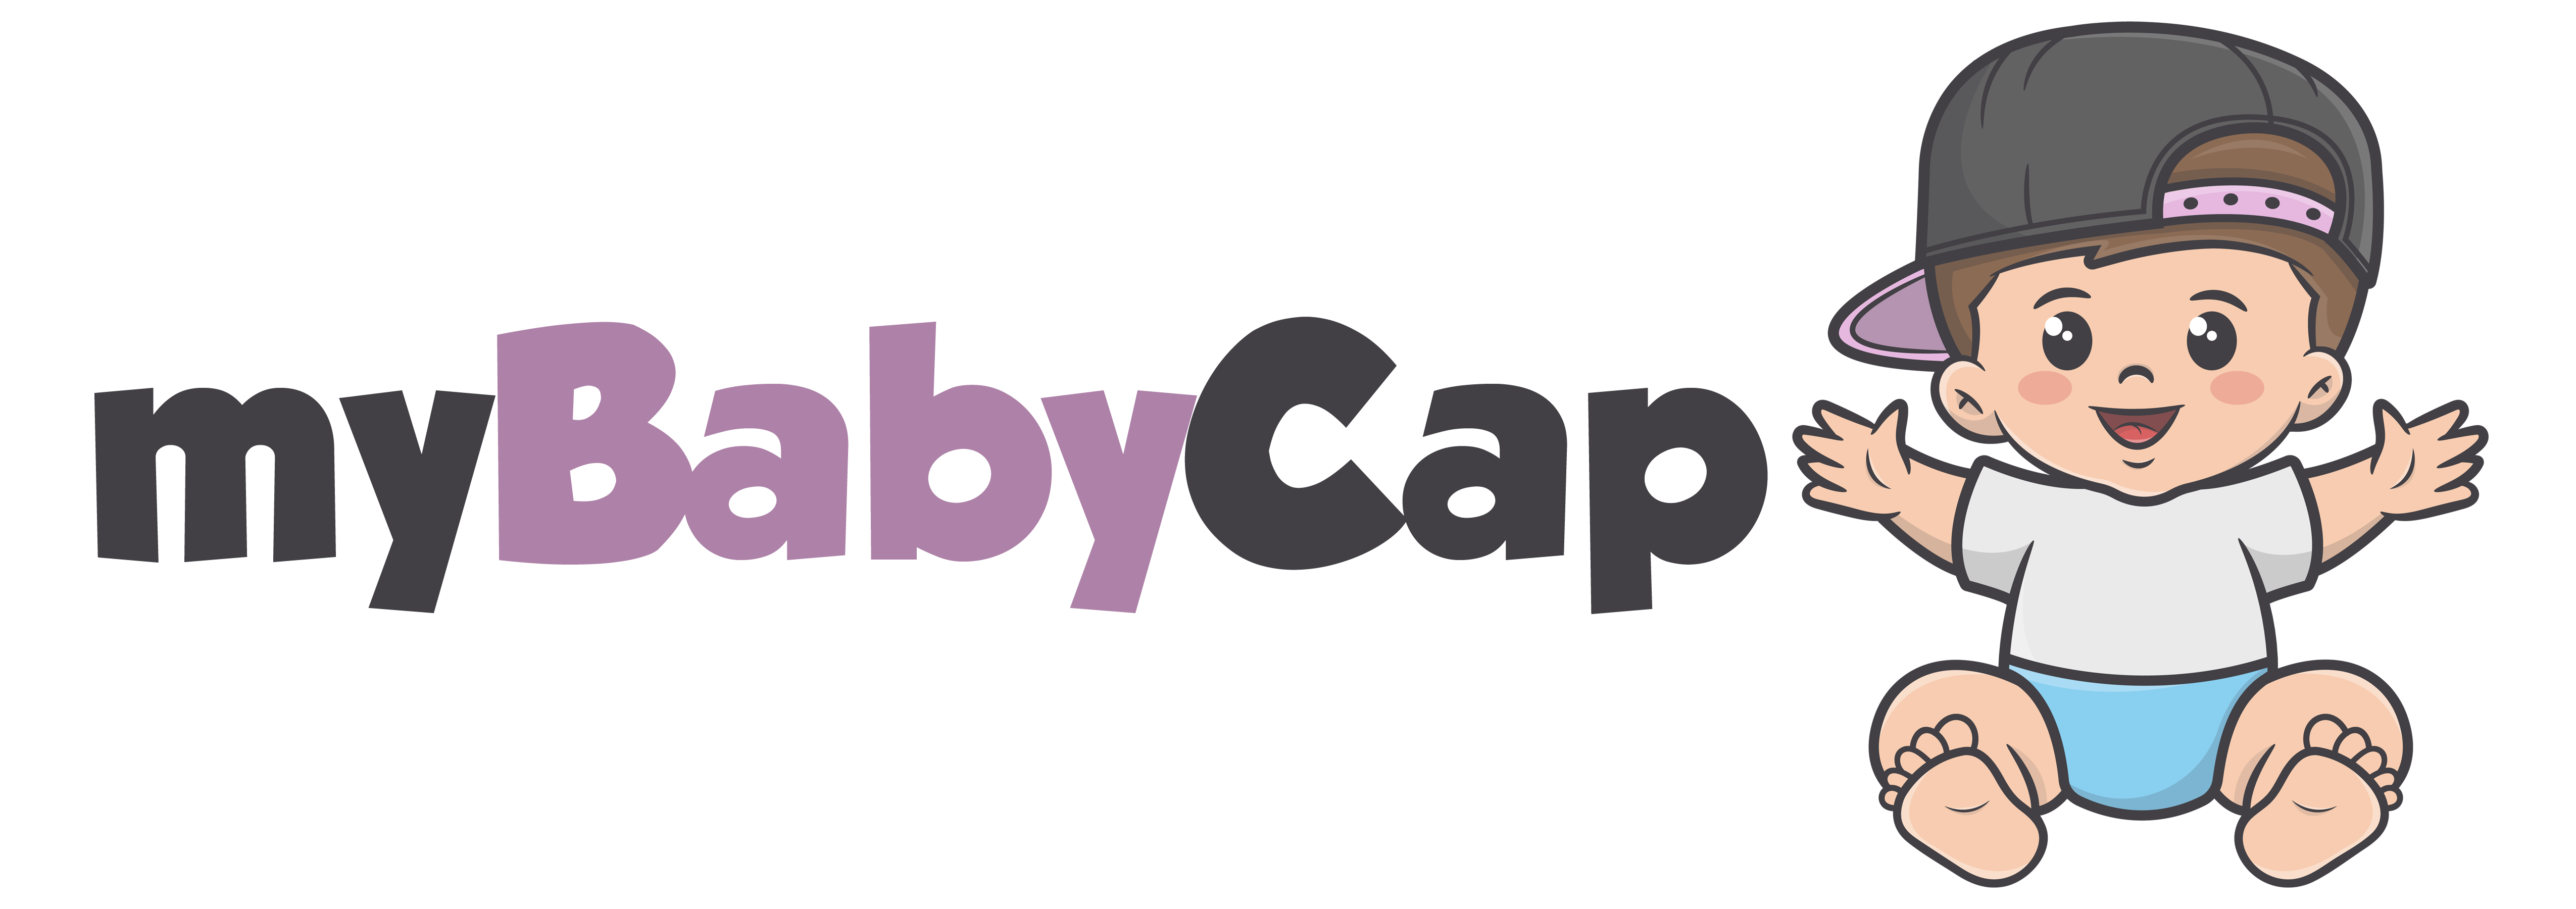 myBabyCap logo text with picture